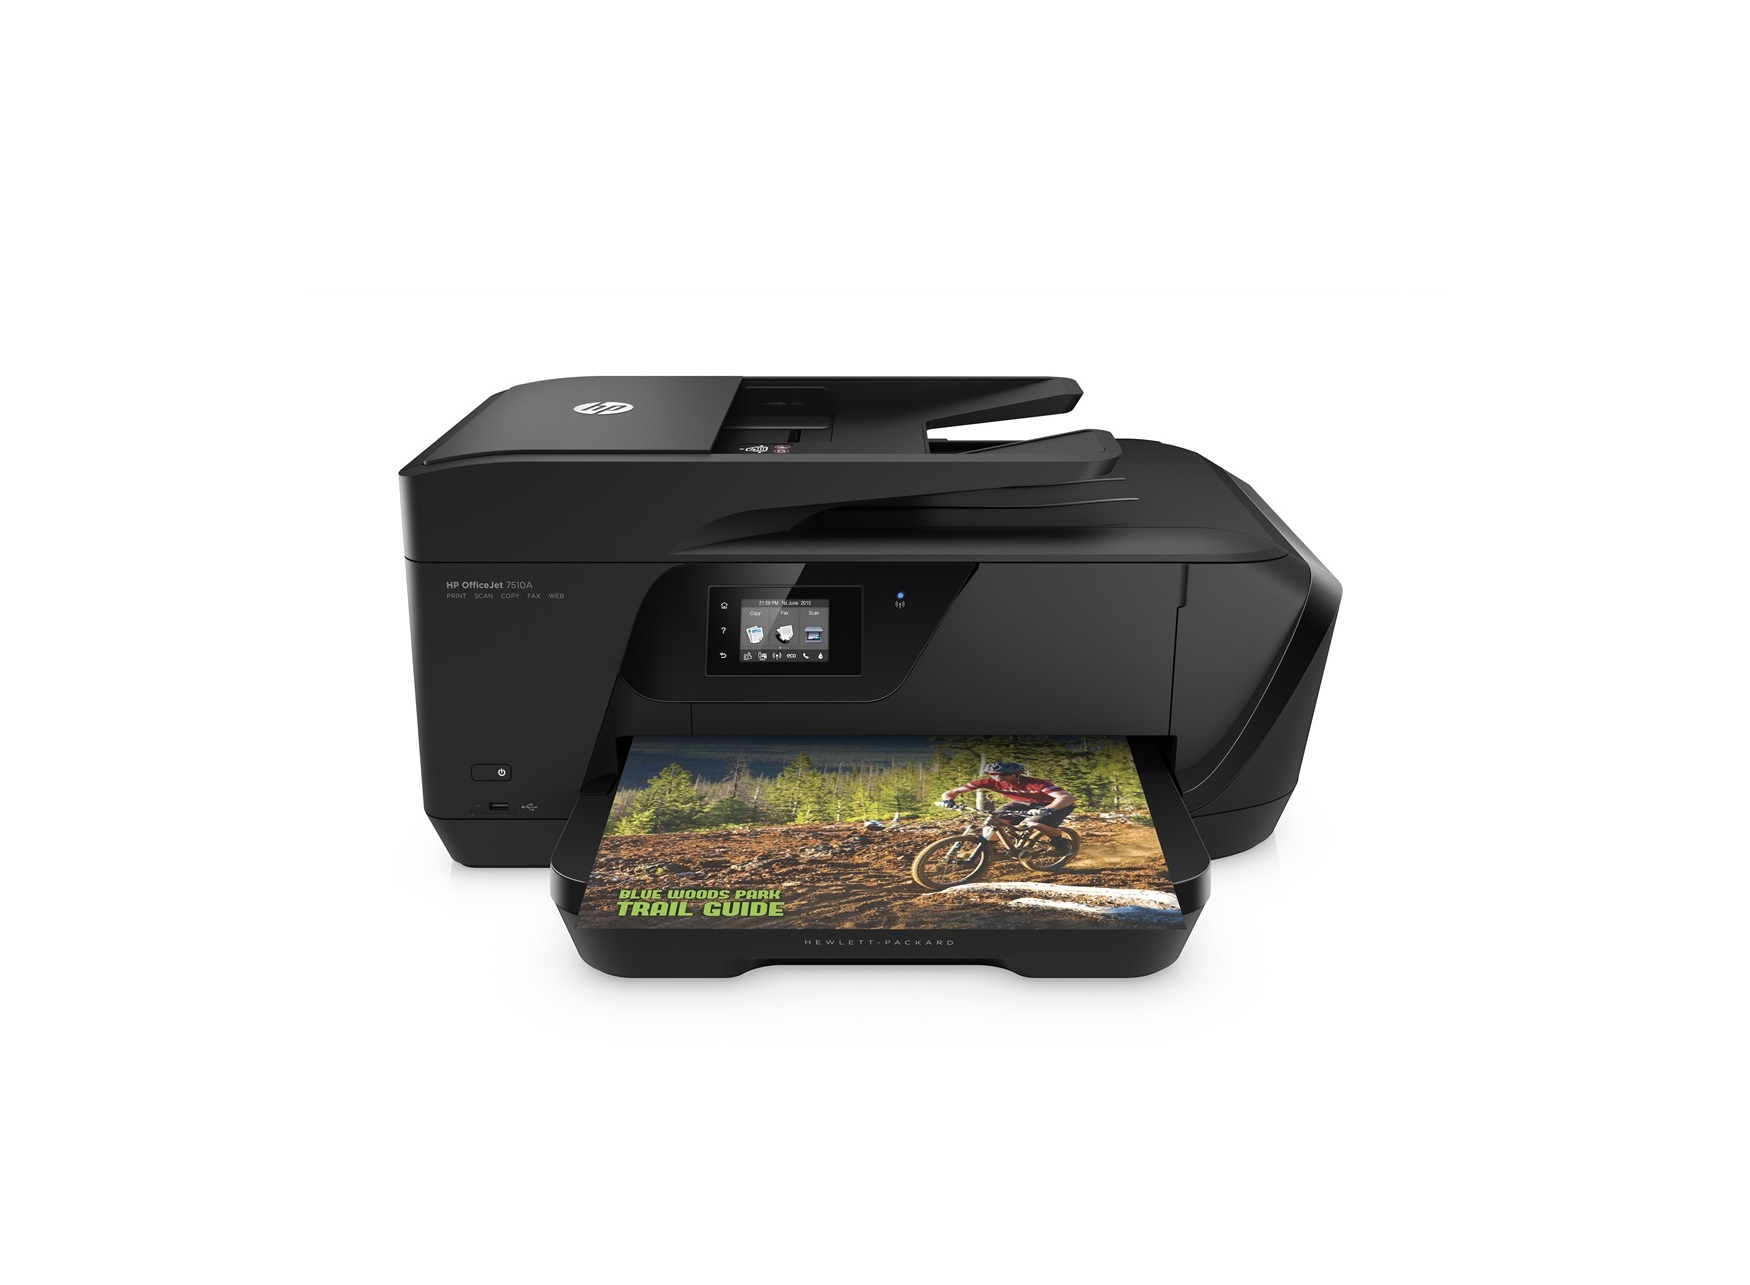 HP OfficeJet 7510 Wide Format AiO Inkjet A3 Wi-Fi Black